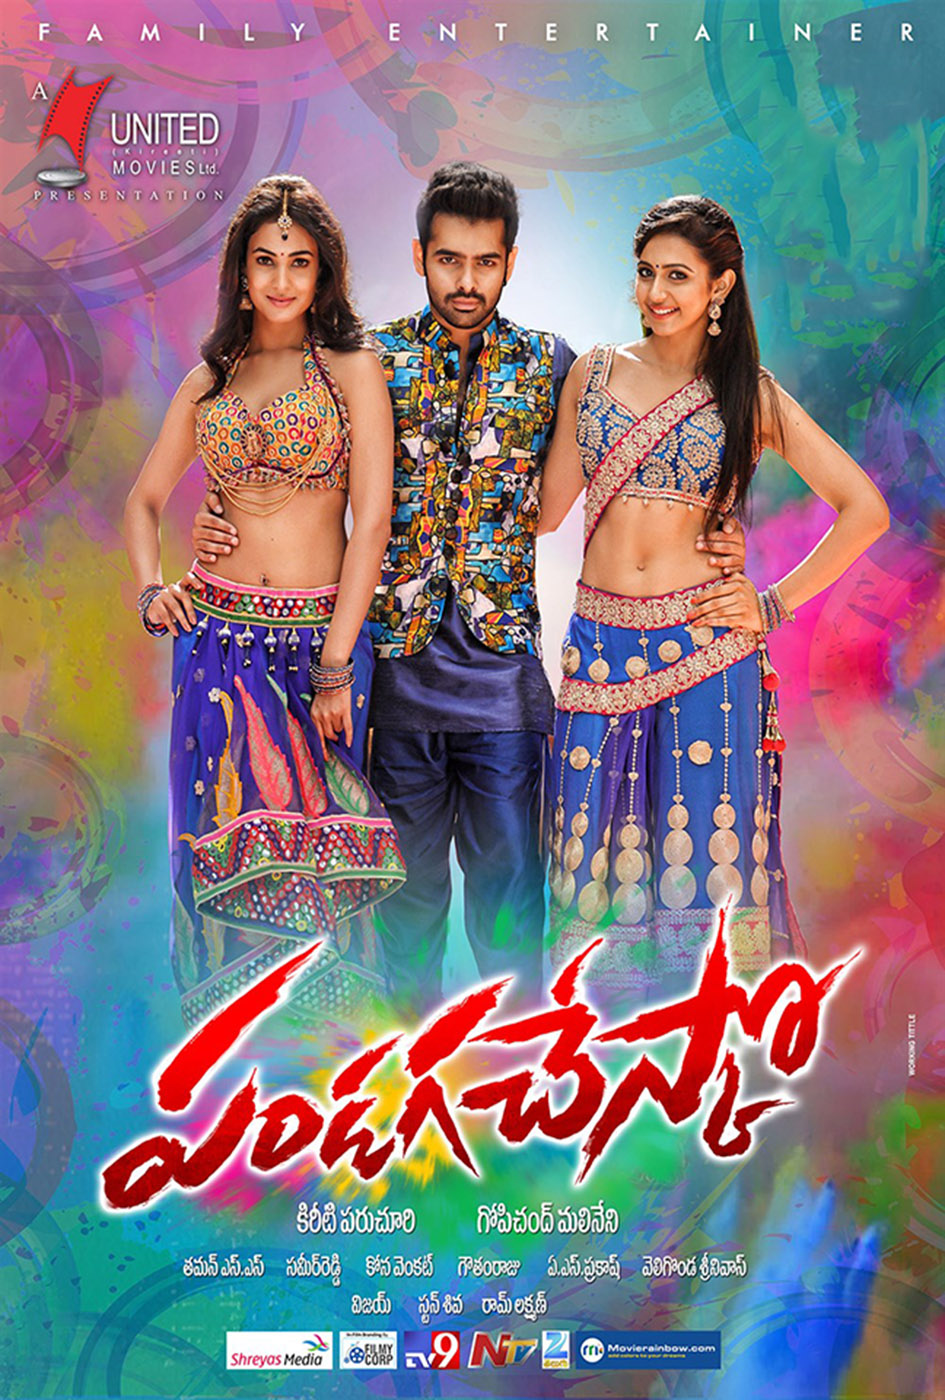 Businessman 2 Pandaga Chesko 2015 Hindi Dubbed